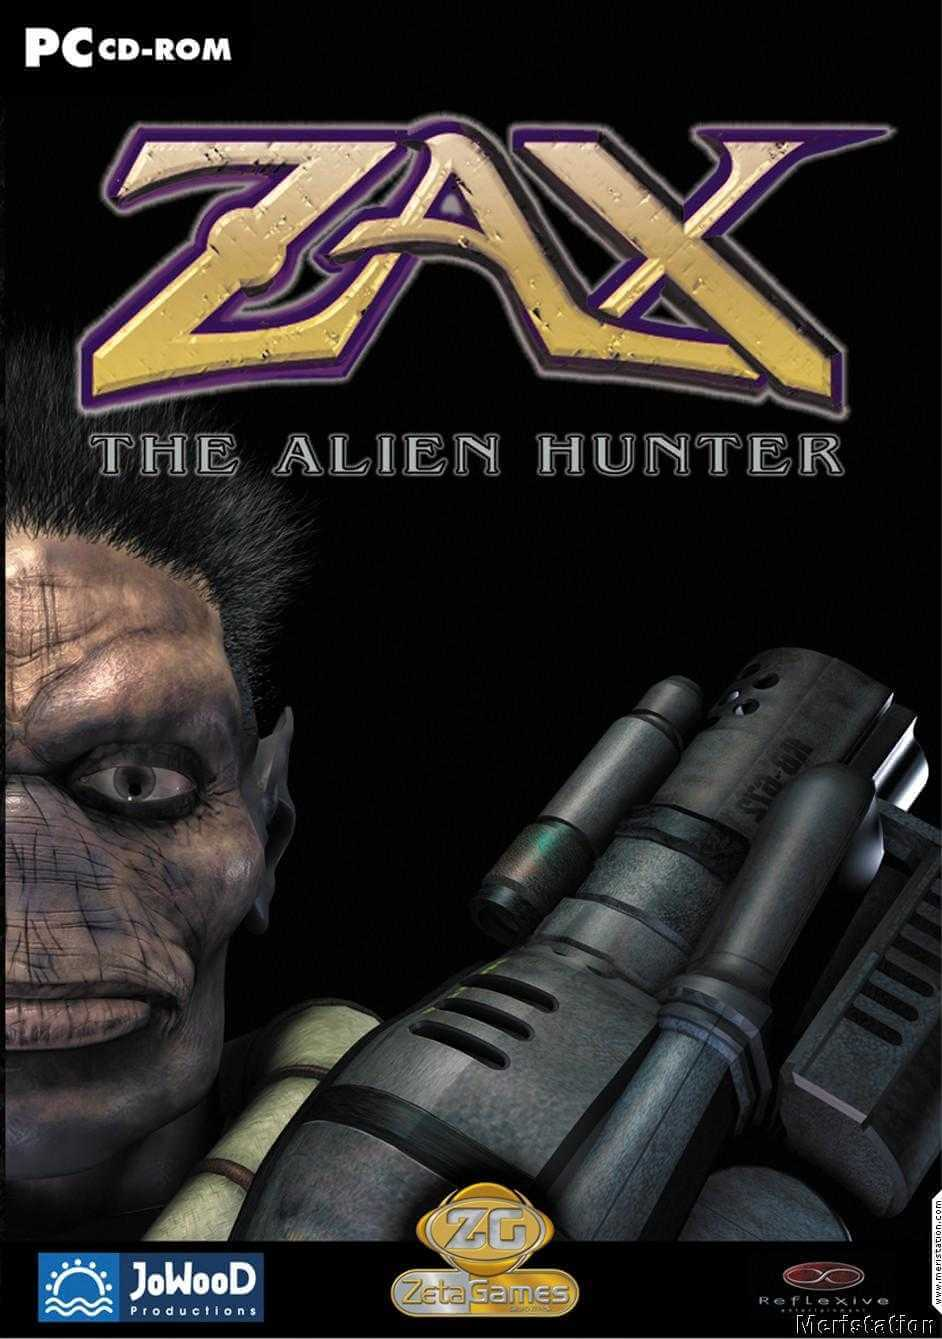 Descargar Zax: The Alien Hunter [PC] [Full] [1-Link] [ISO] Gratis [MEGA]